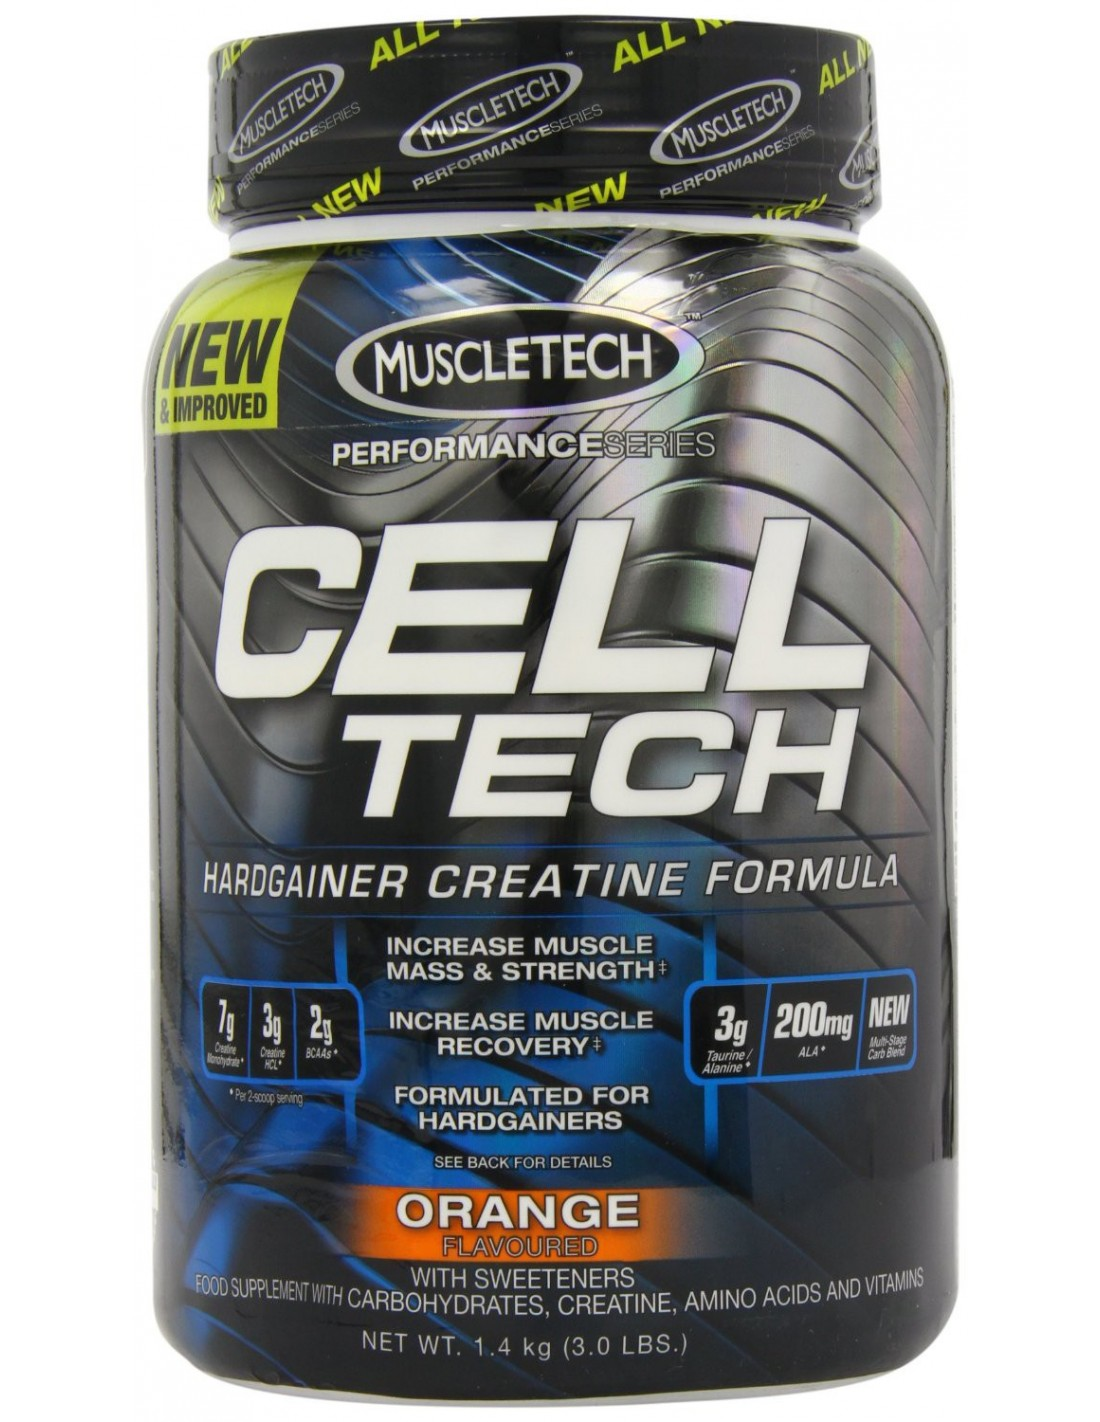 Muscletech cell tech performance series 14 kg at 27 - Cell tech hardgainer creatine formula ...